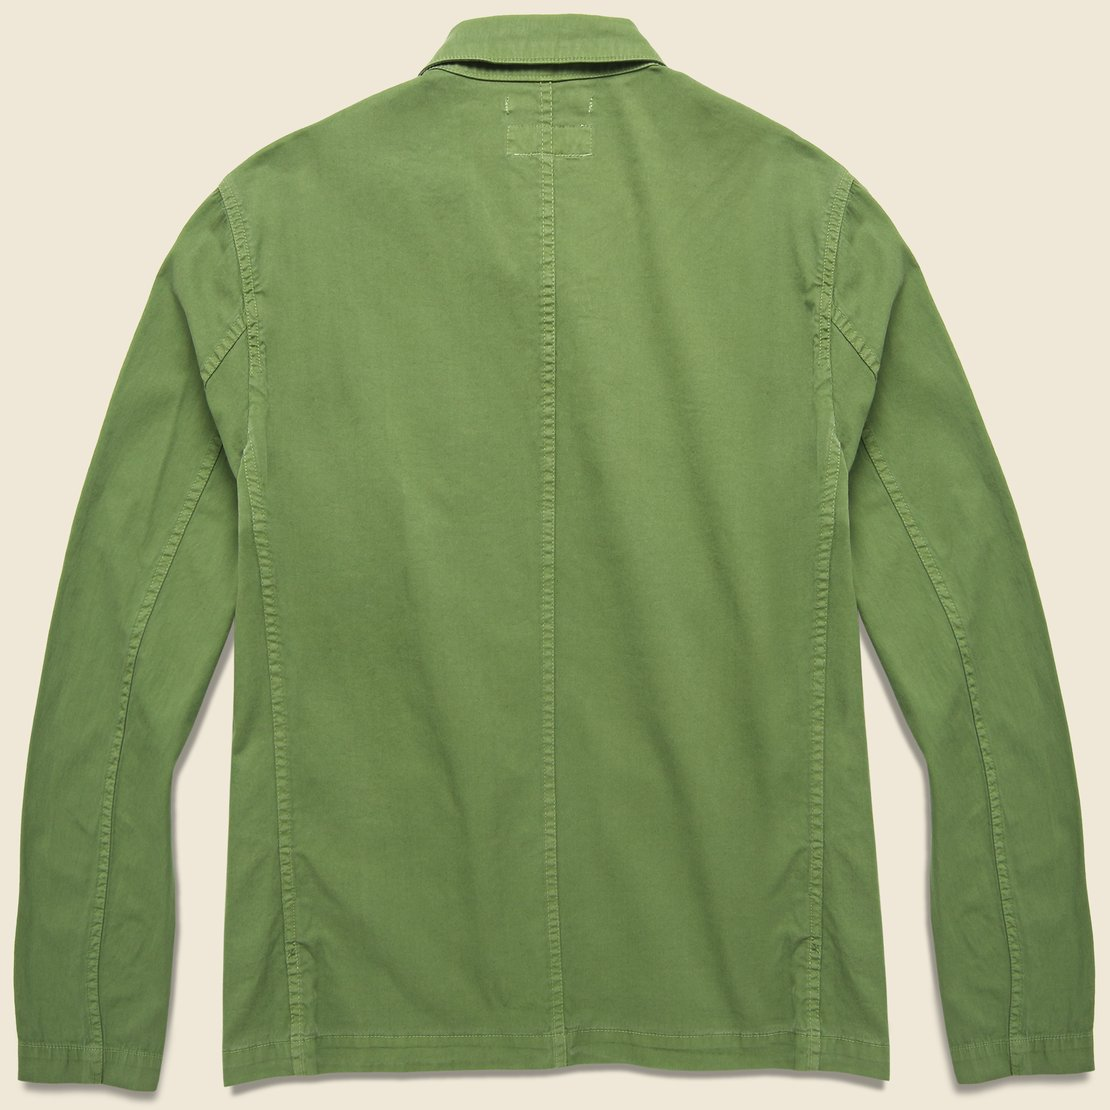 Work Jacket - Army Green